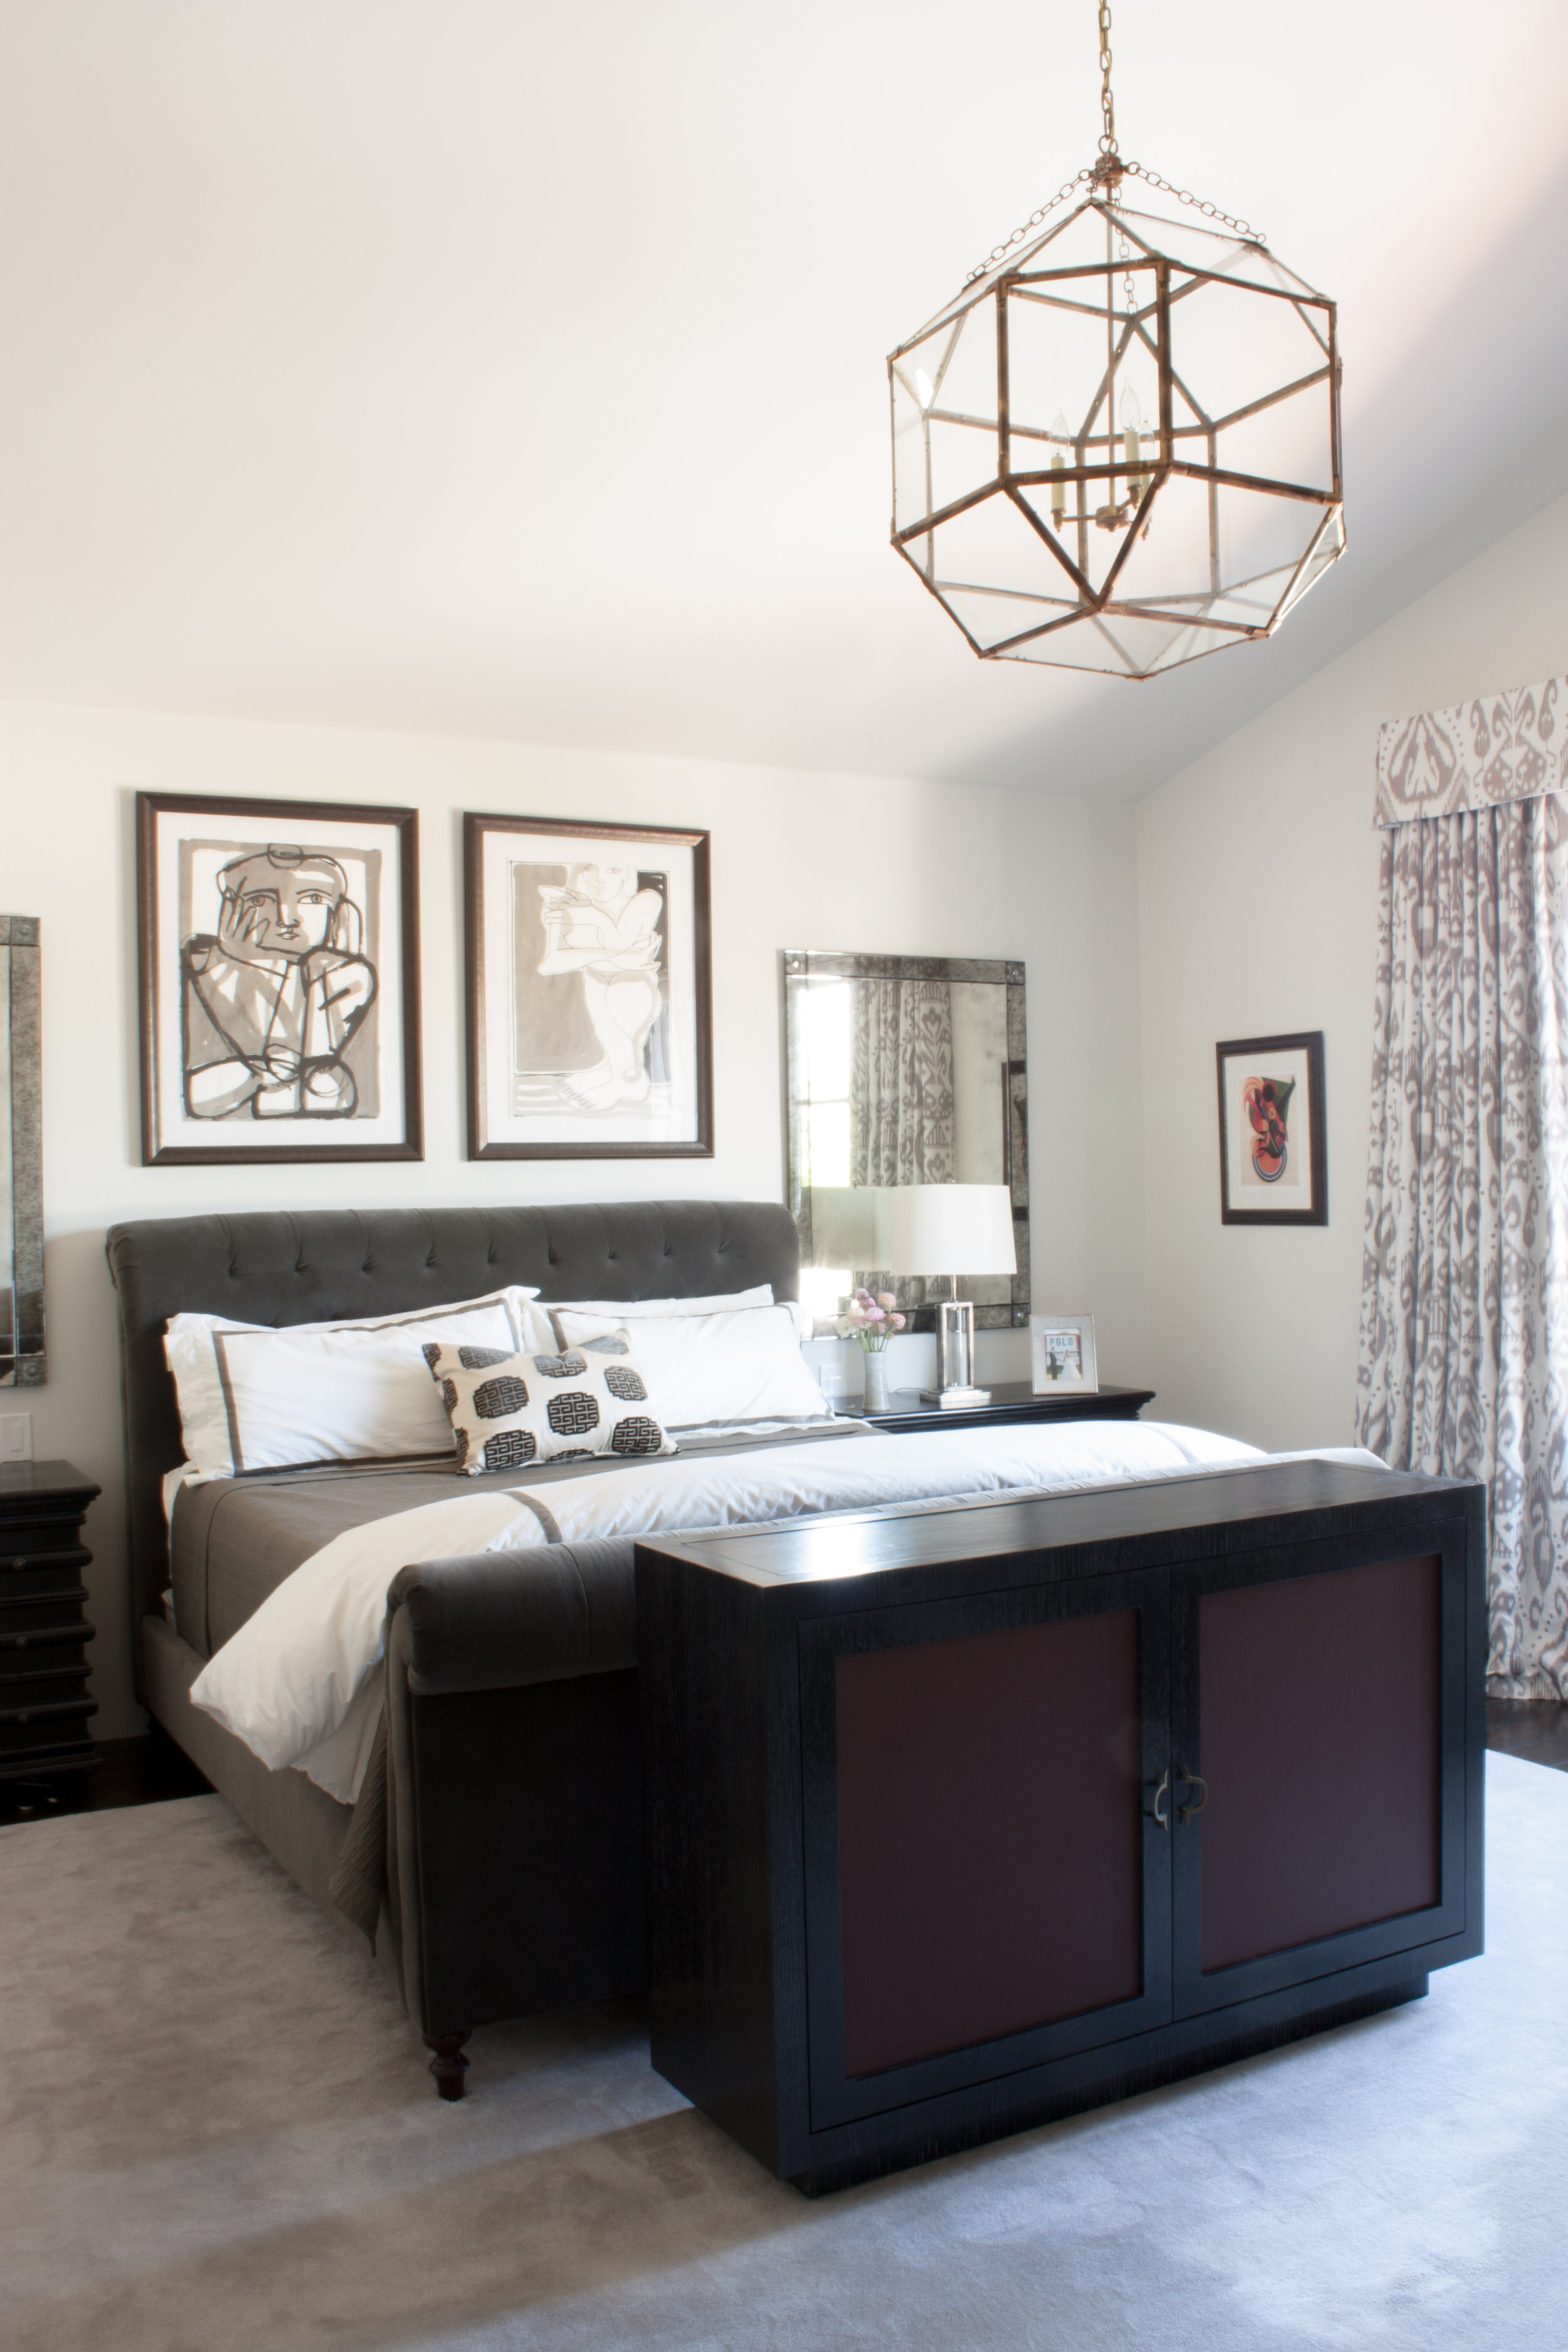 Wendy Haworth Design | Laurel Avenue | www.wendyhaworthdesign.com